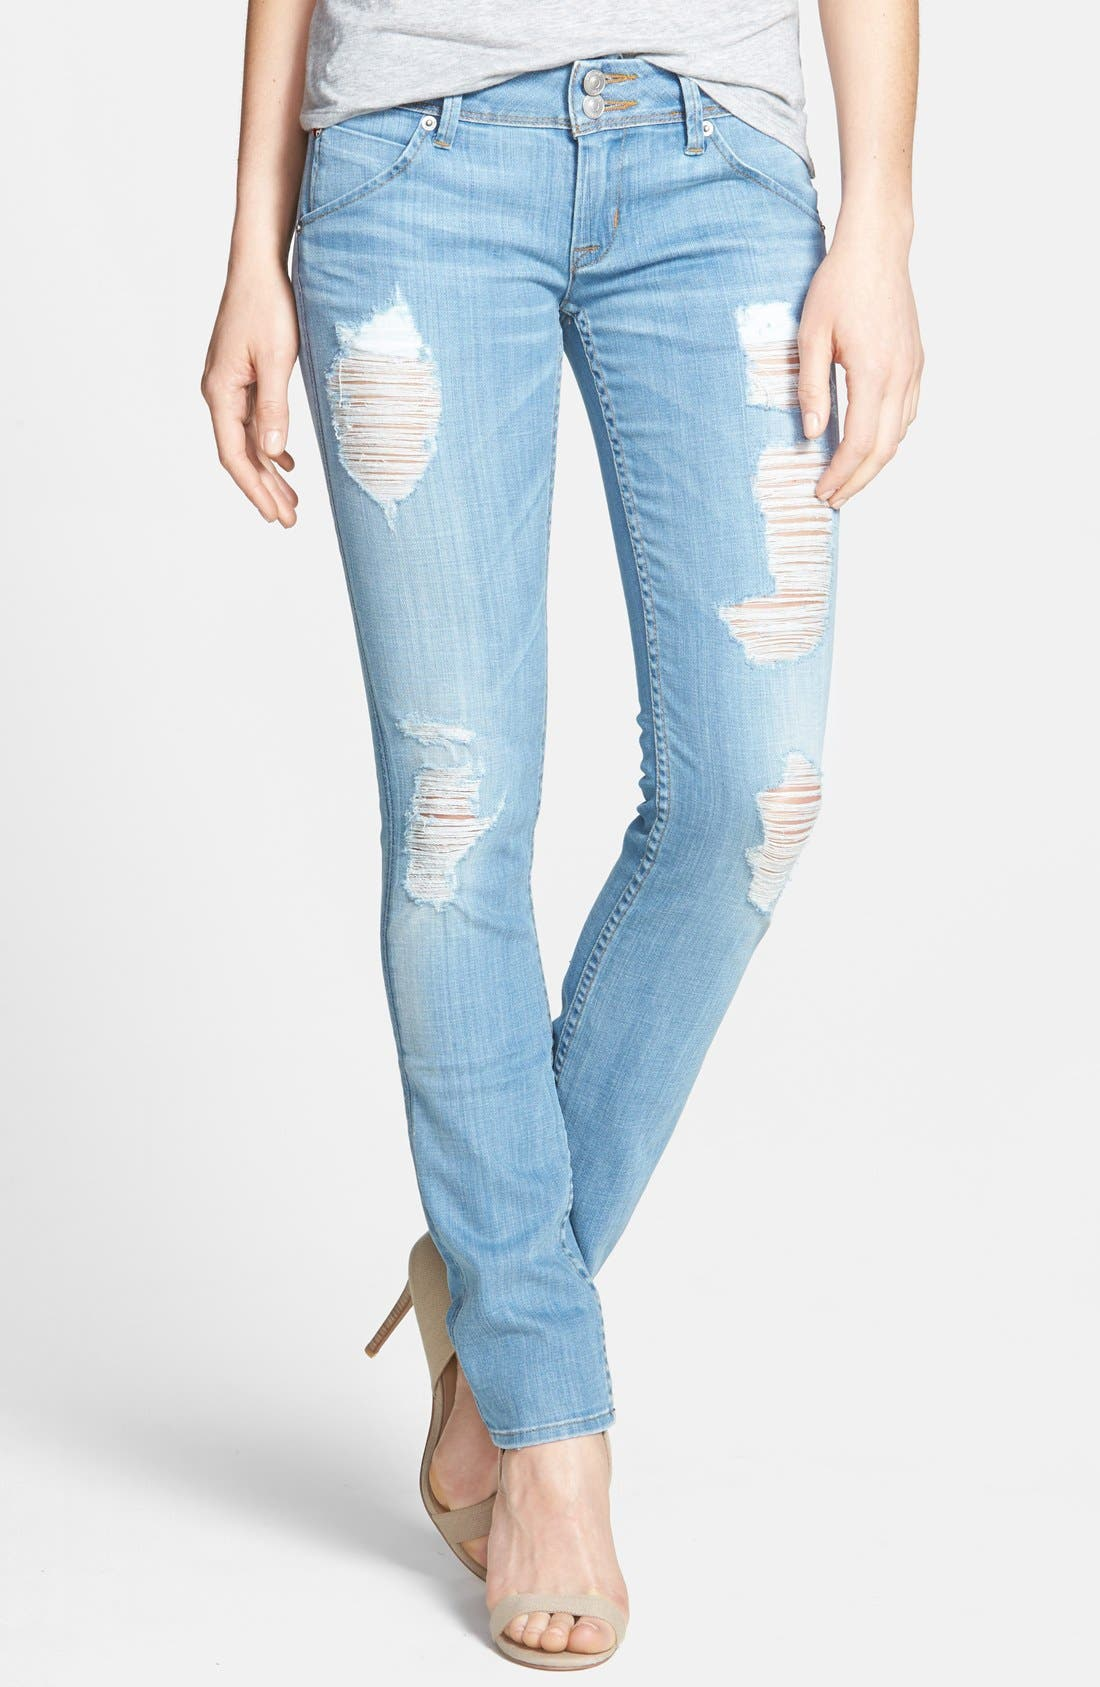 Alternate Image 1 Selected - Hudson Jeans 'Collin' Skinny Jeans (Soul Search)